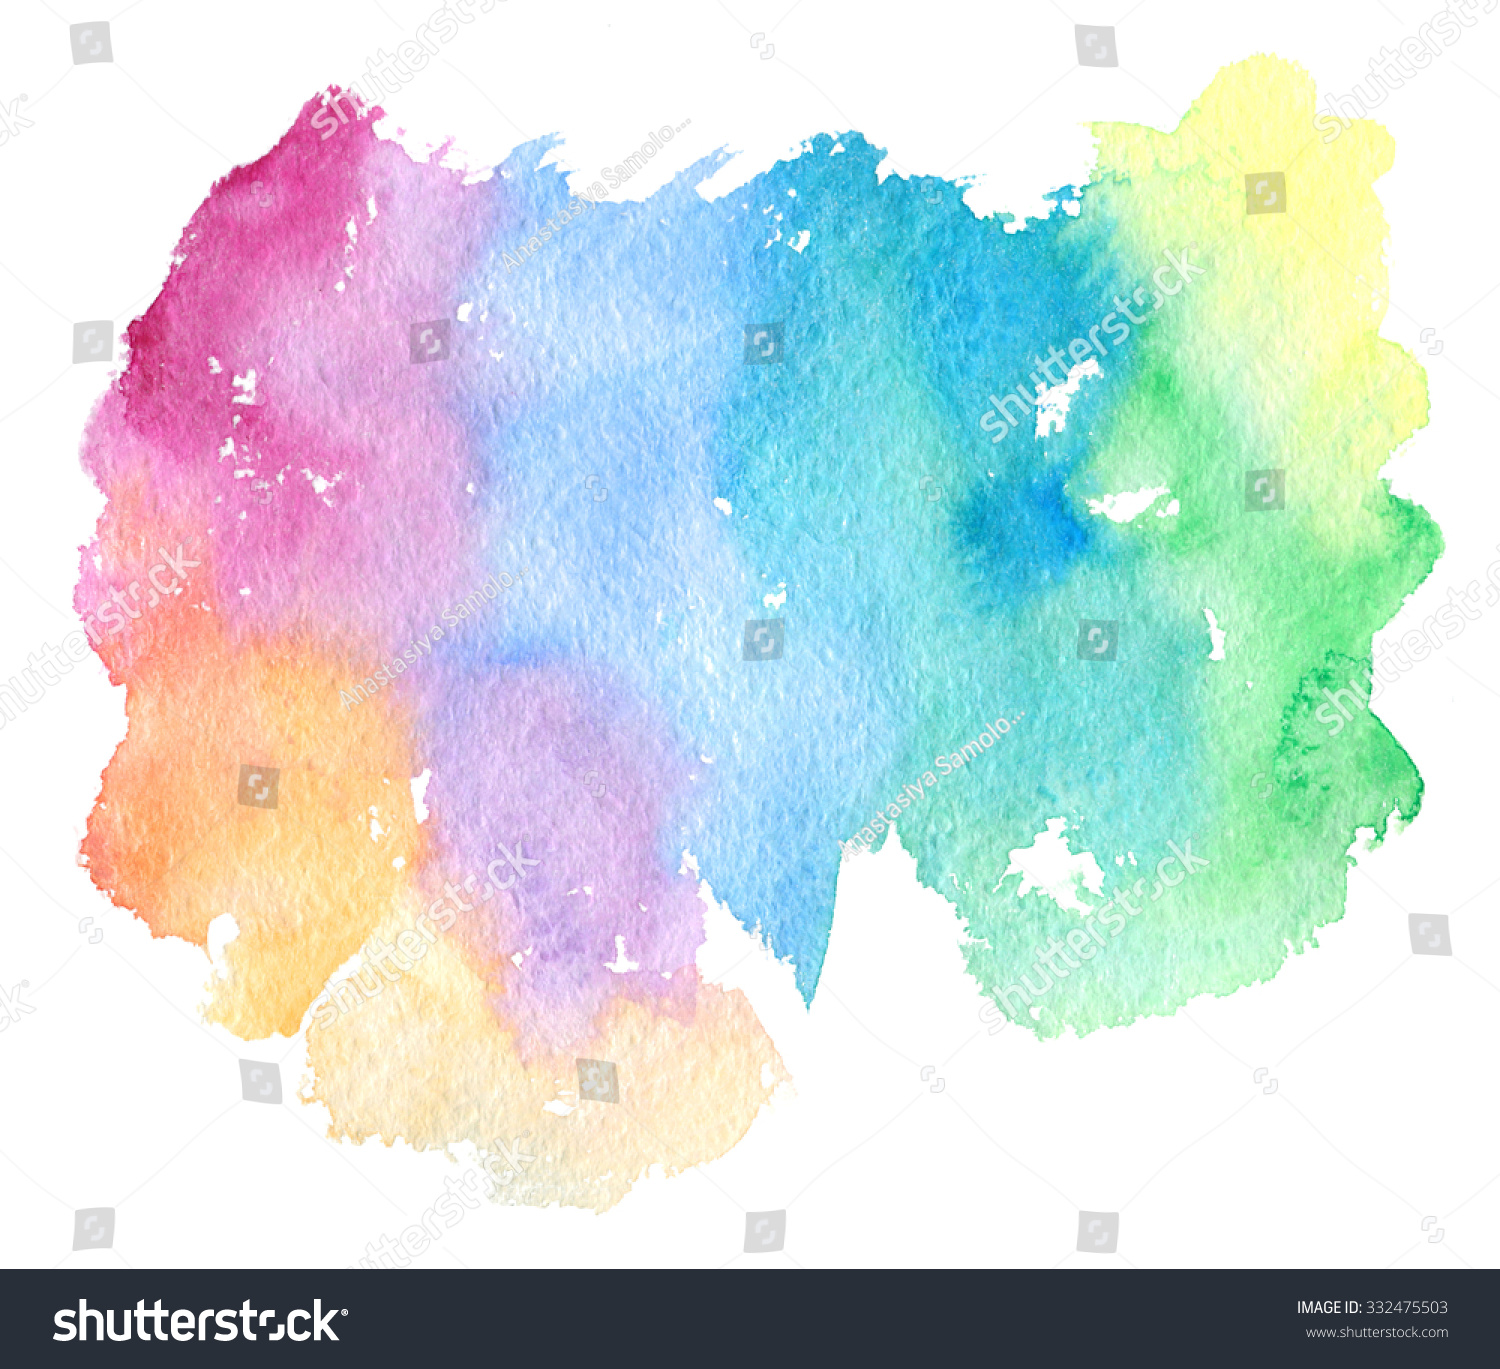 Rainbow Paint Splatter White Background